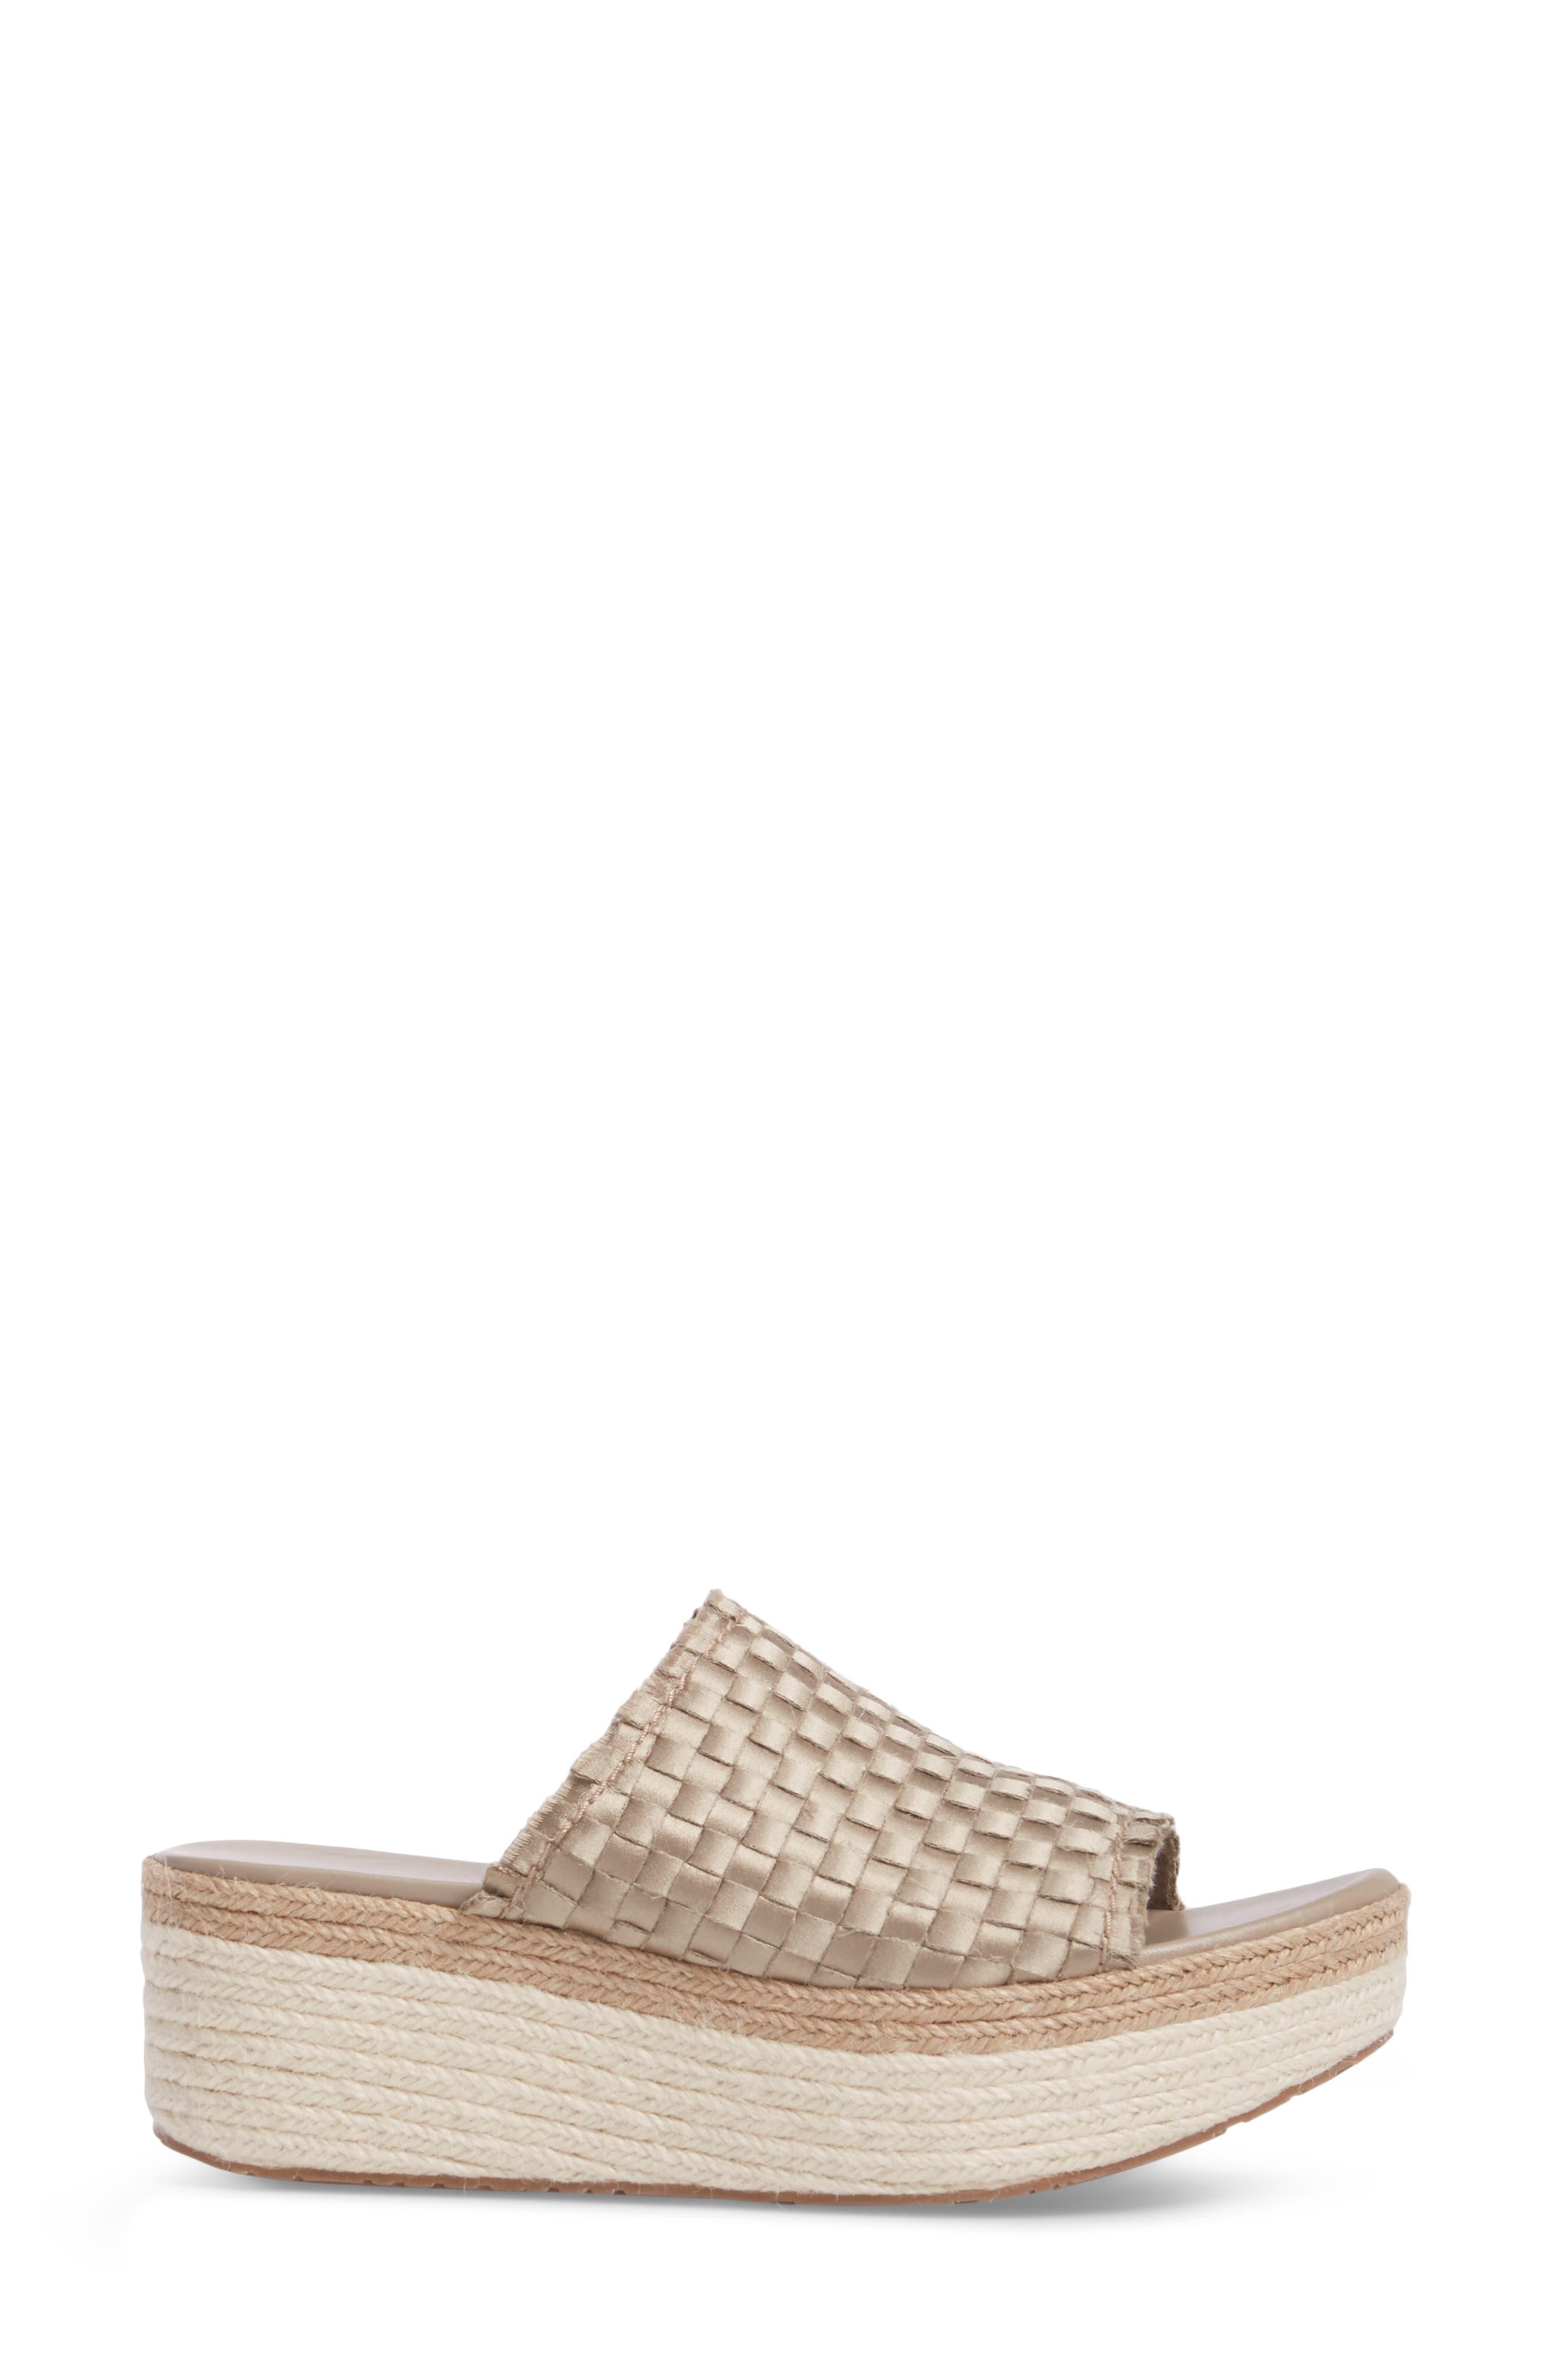 Noema Woven Espadrille Mule,                             Alternate thumbnail 3, color,                             Twill Satin